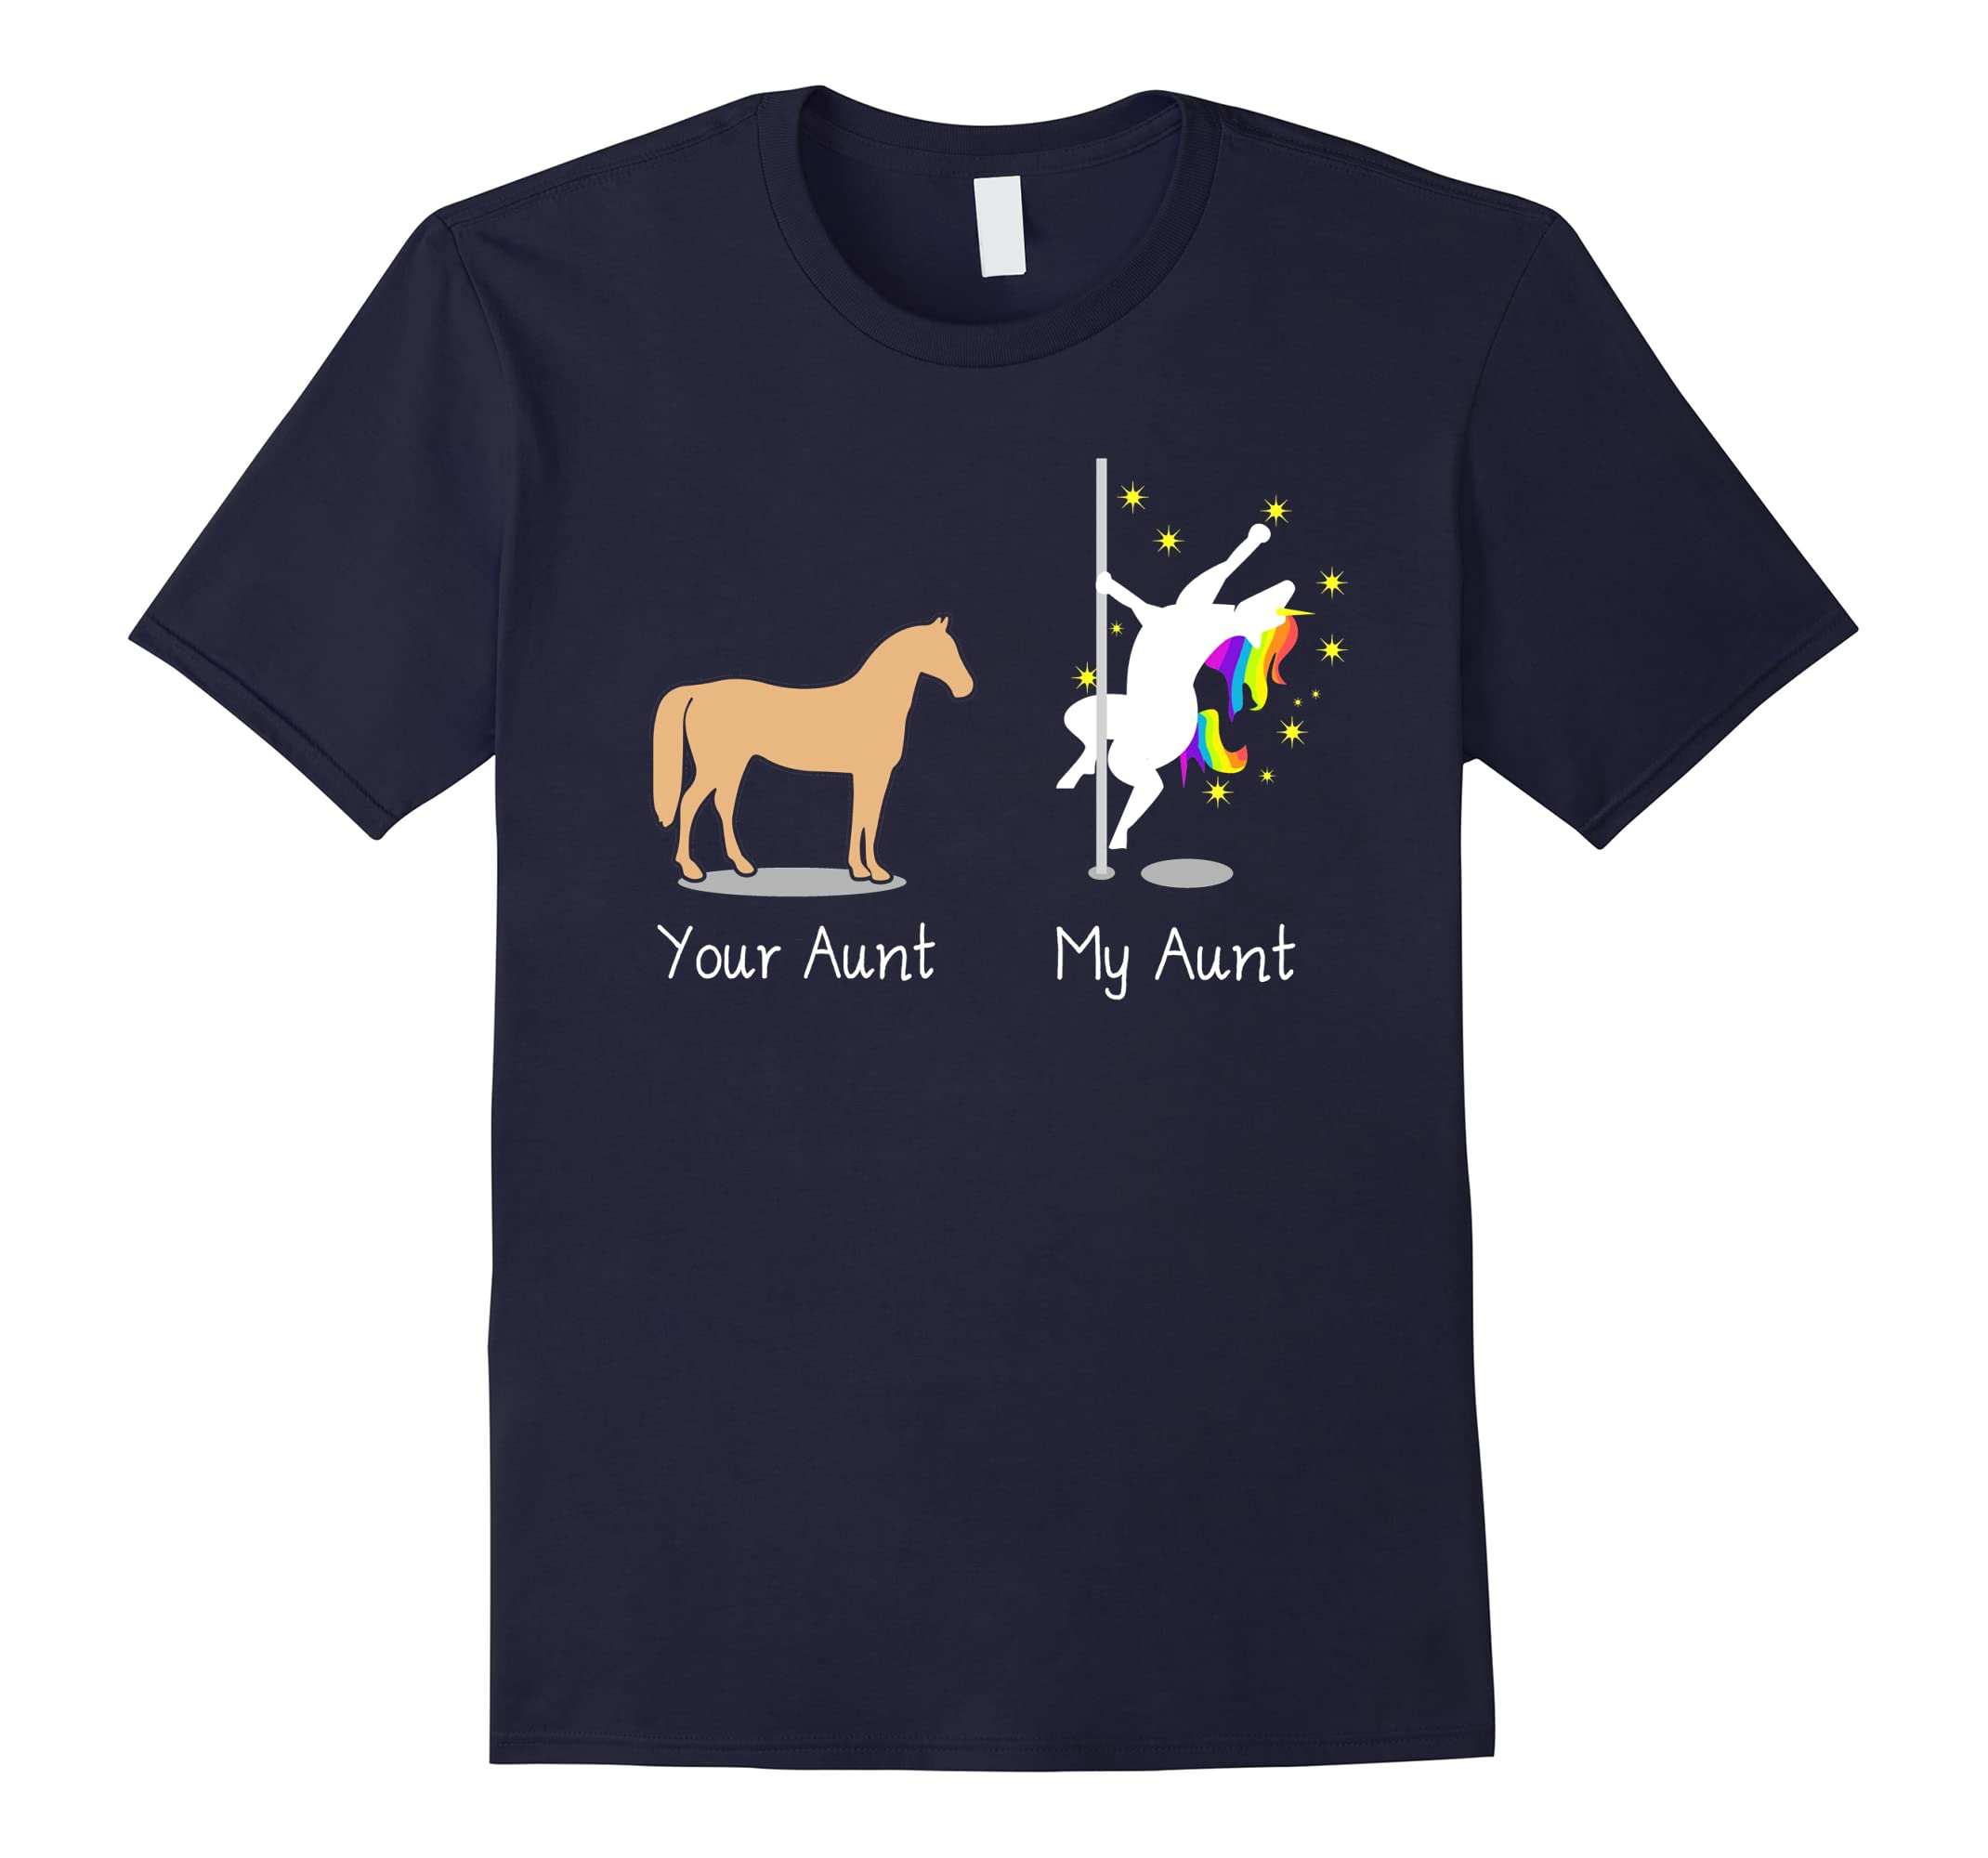 Your Aunt My Aunt Funny Unicorn Shirts for Women Auntie Tee-RT